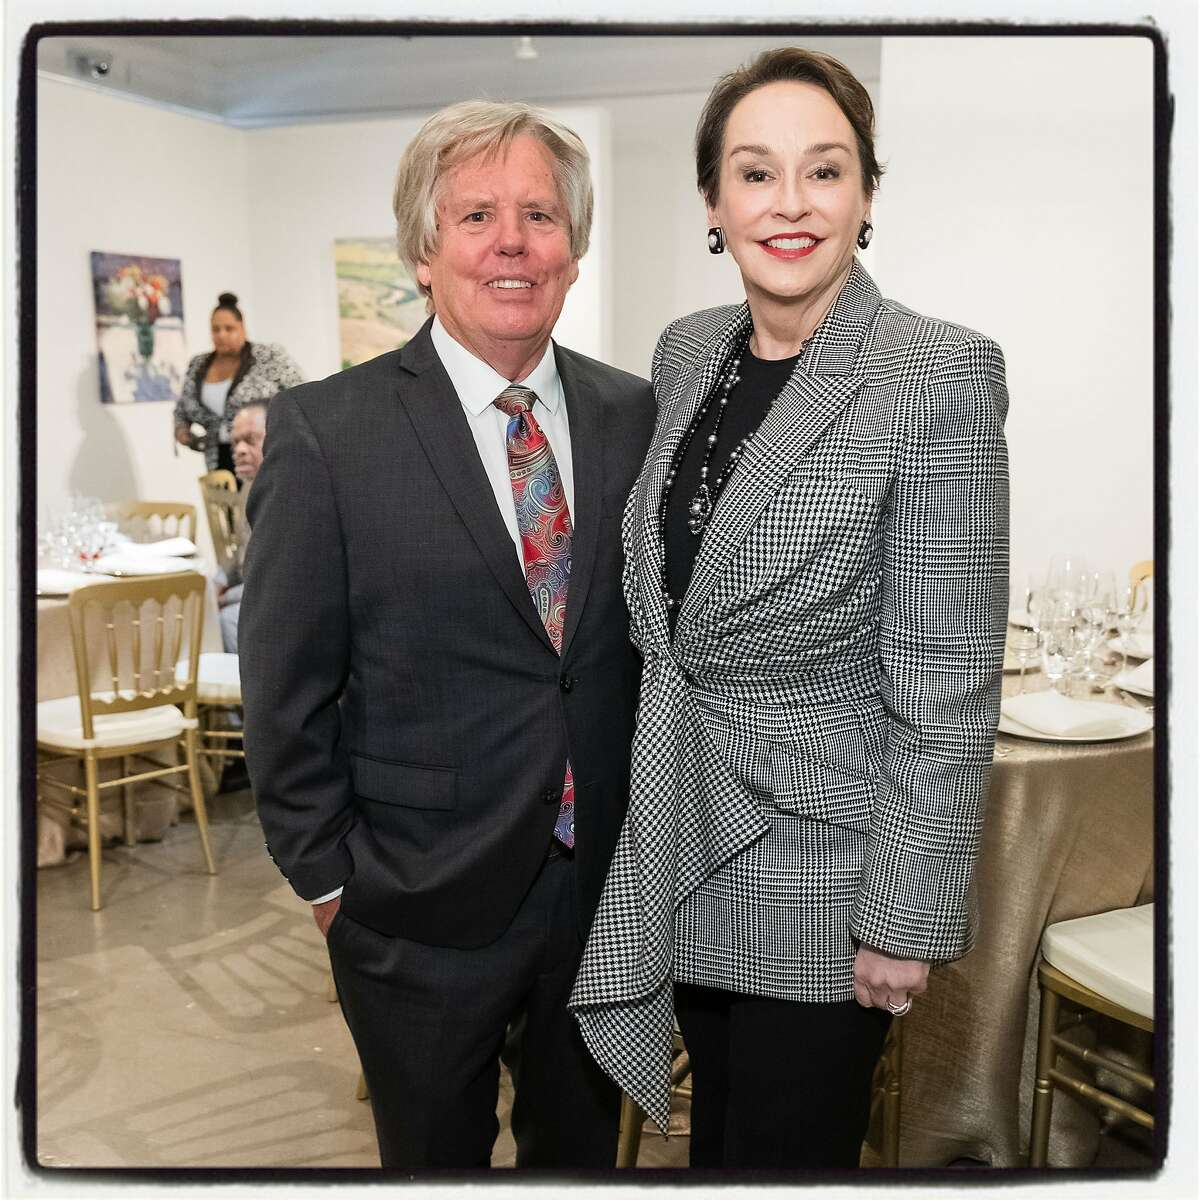 Artist Craig Nelson and Academy of Art University President Elisa Stephens at the Mayor Willie L. Brown, Jr. Portrait Unveiling and Luncheon. Nov. 27, 2019.